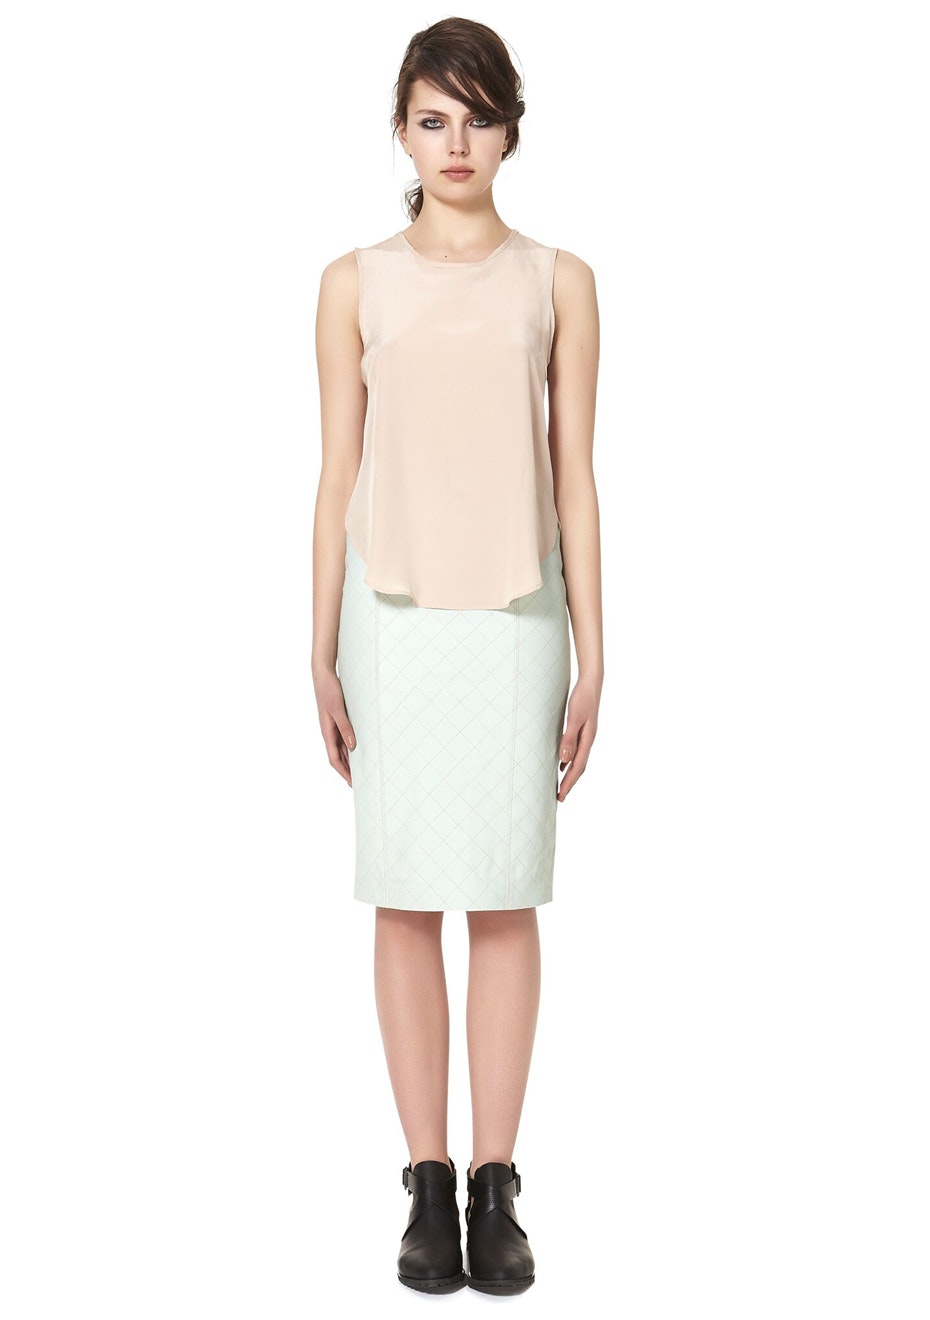 West 14th - The Americano Quilted Skirt - Celadon (Mint Colour)